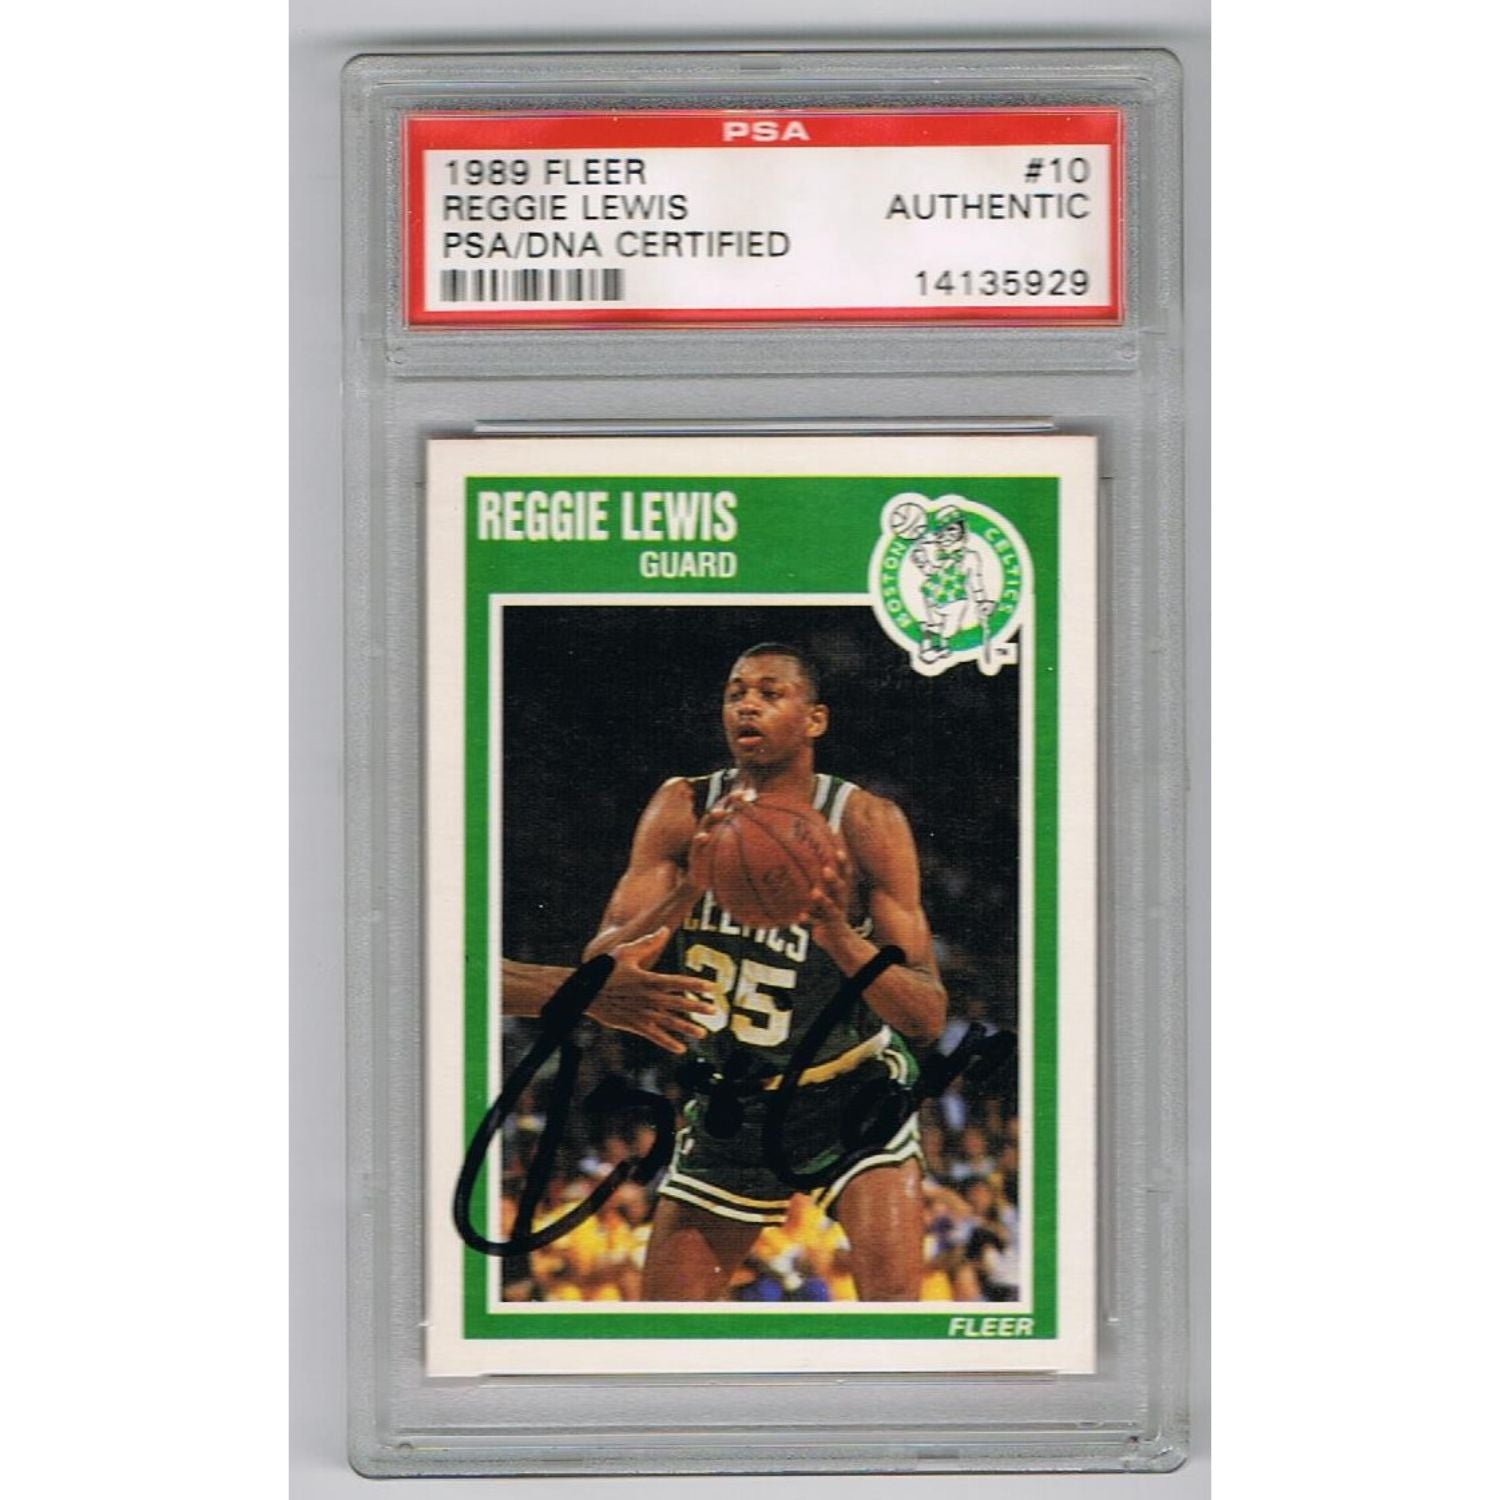 Reggie Lewis Autographed Boston Celtics Signed 1989 Fleer NBA Basketball Rookie Card PSA DNA COA-Powers Sports Memorabilia